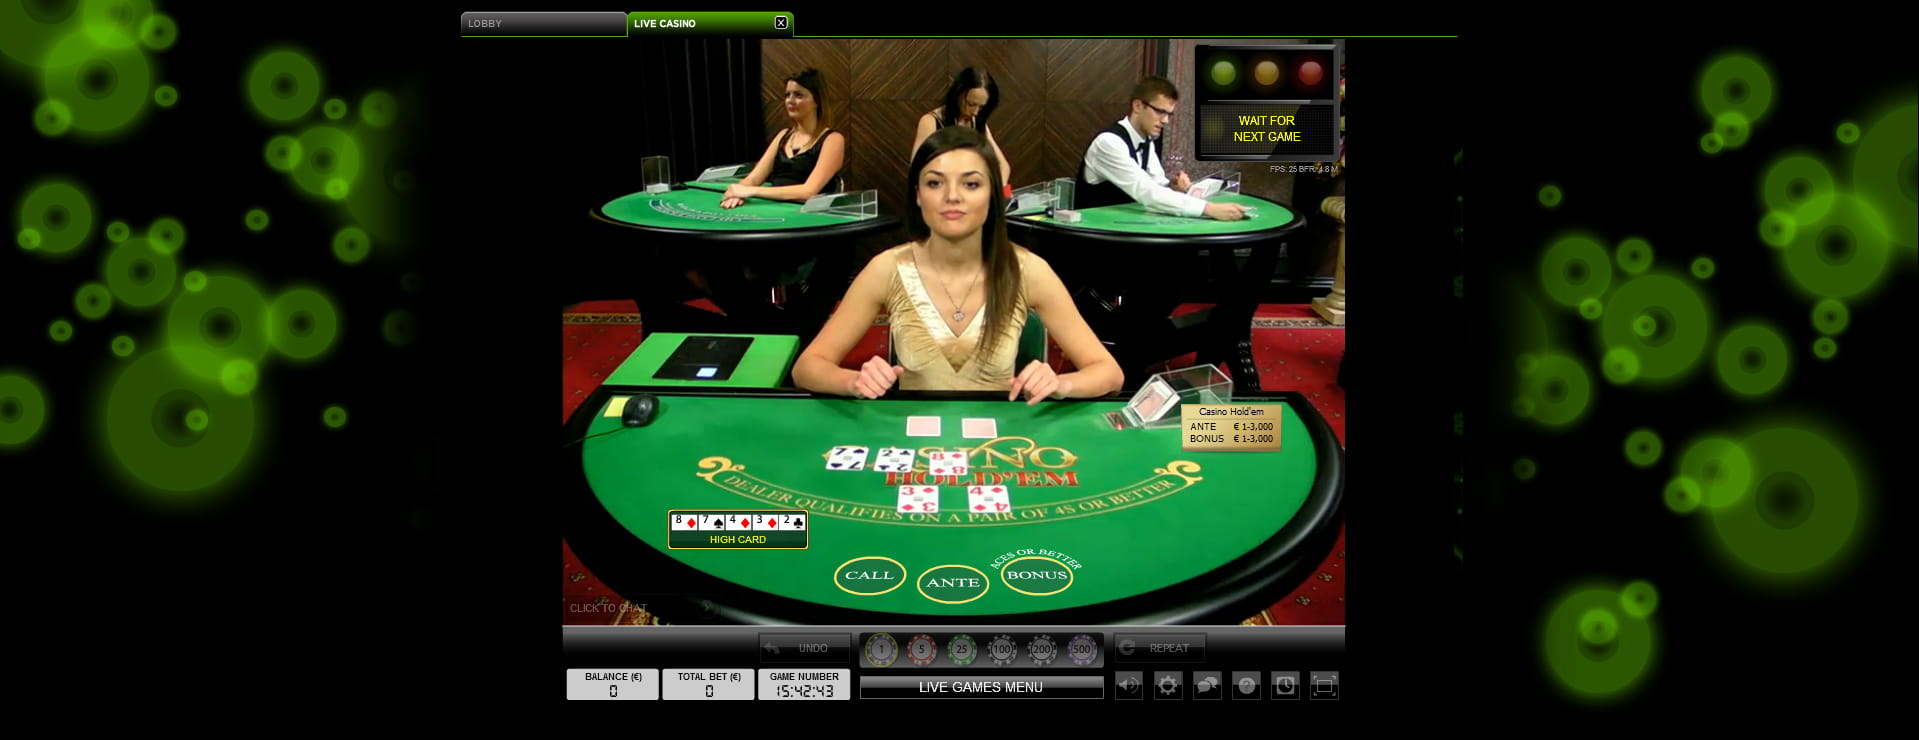 Live Dealer | Euro Palace Casino Blog